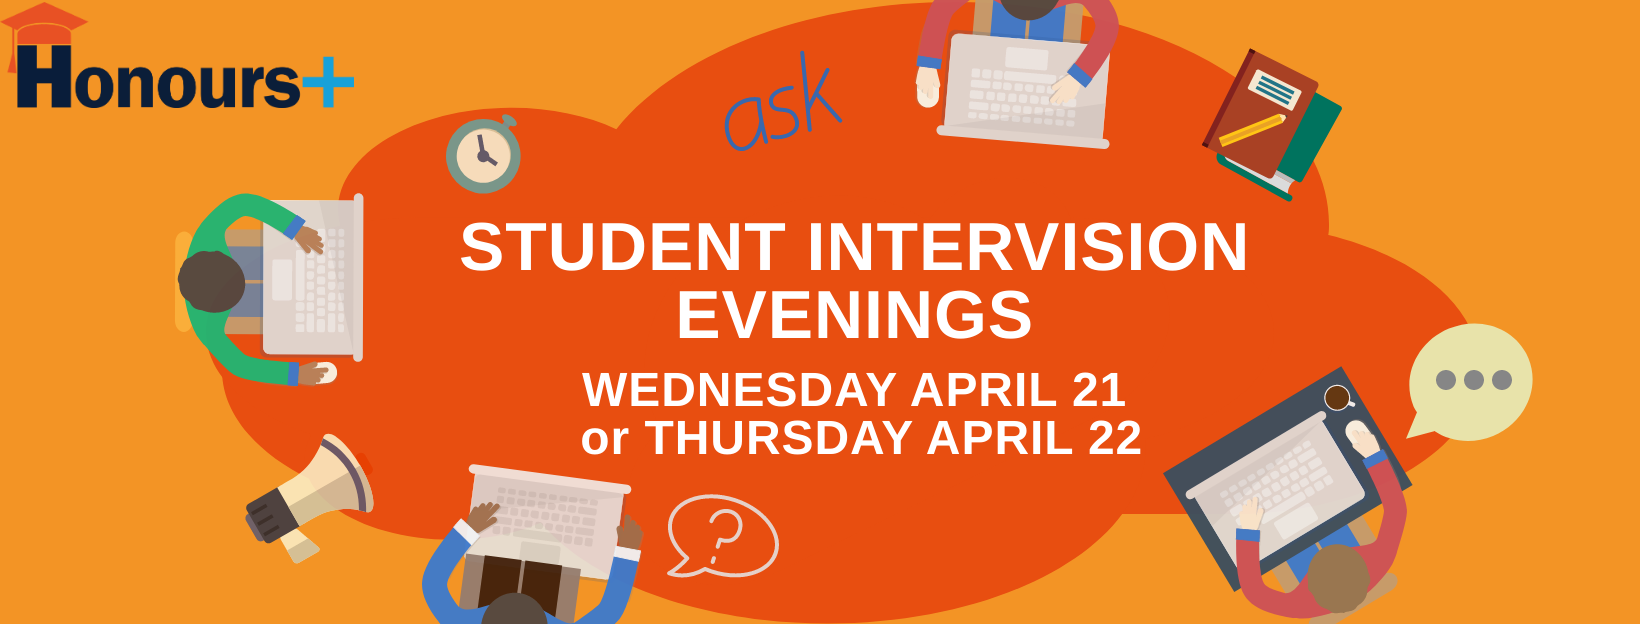 Student Intervision Evenings Banner 2020-2021 FB